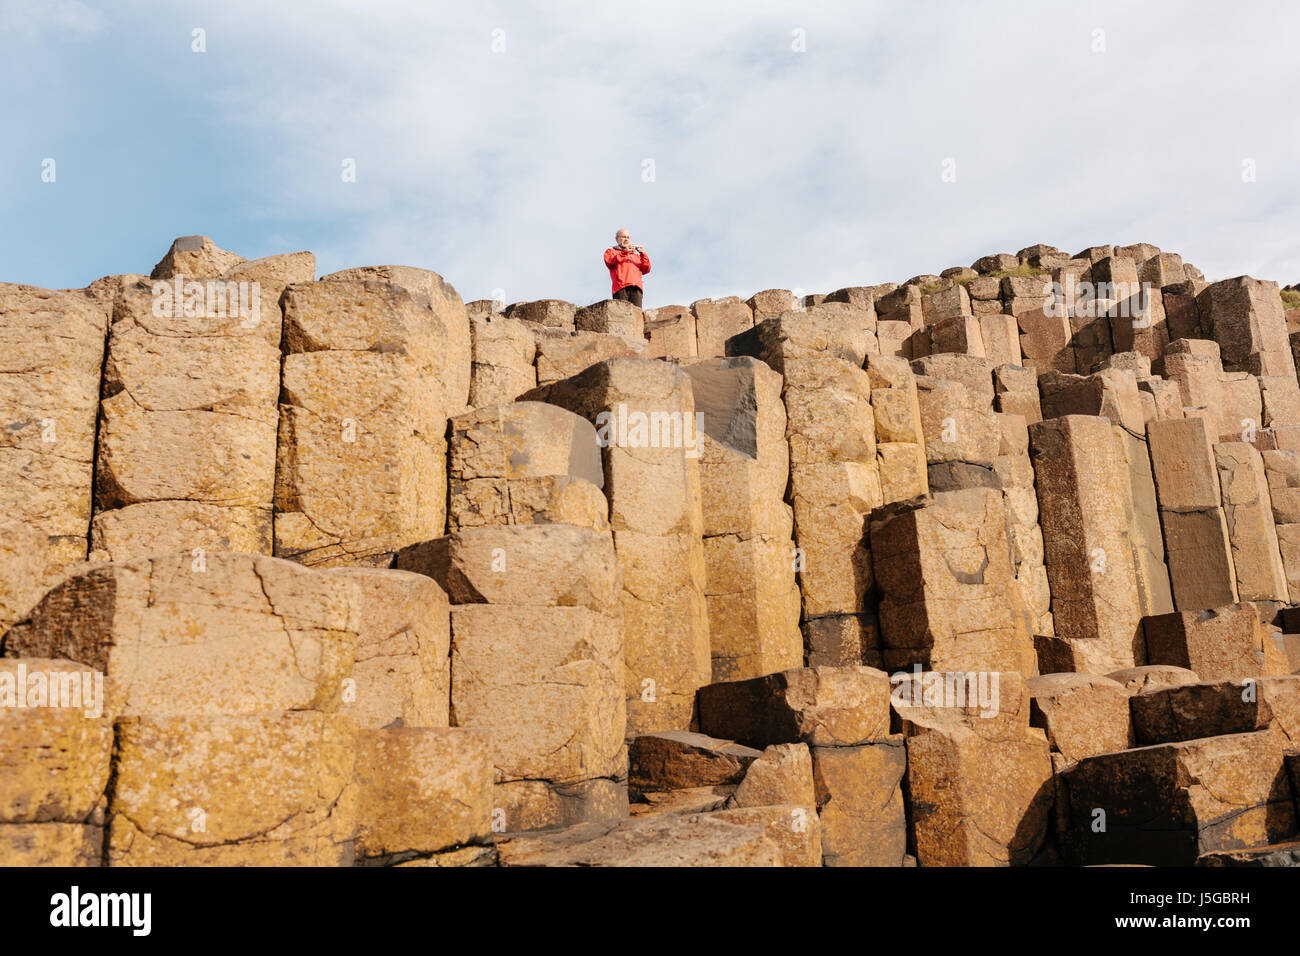 Male Tourist wearing a red jacket at The Giant's Causeway. - Stock Image